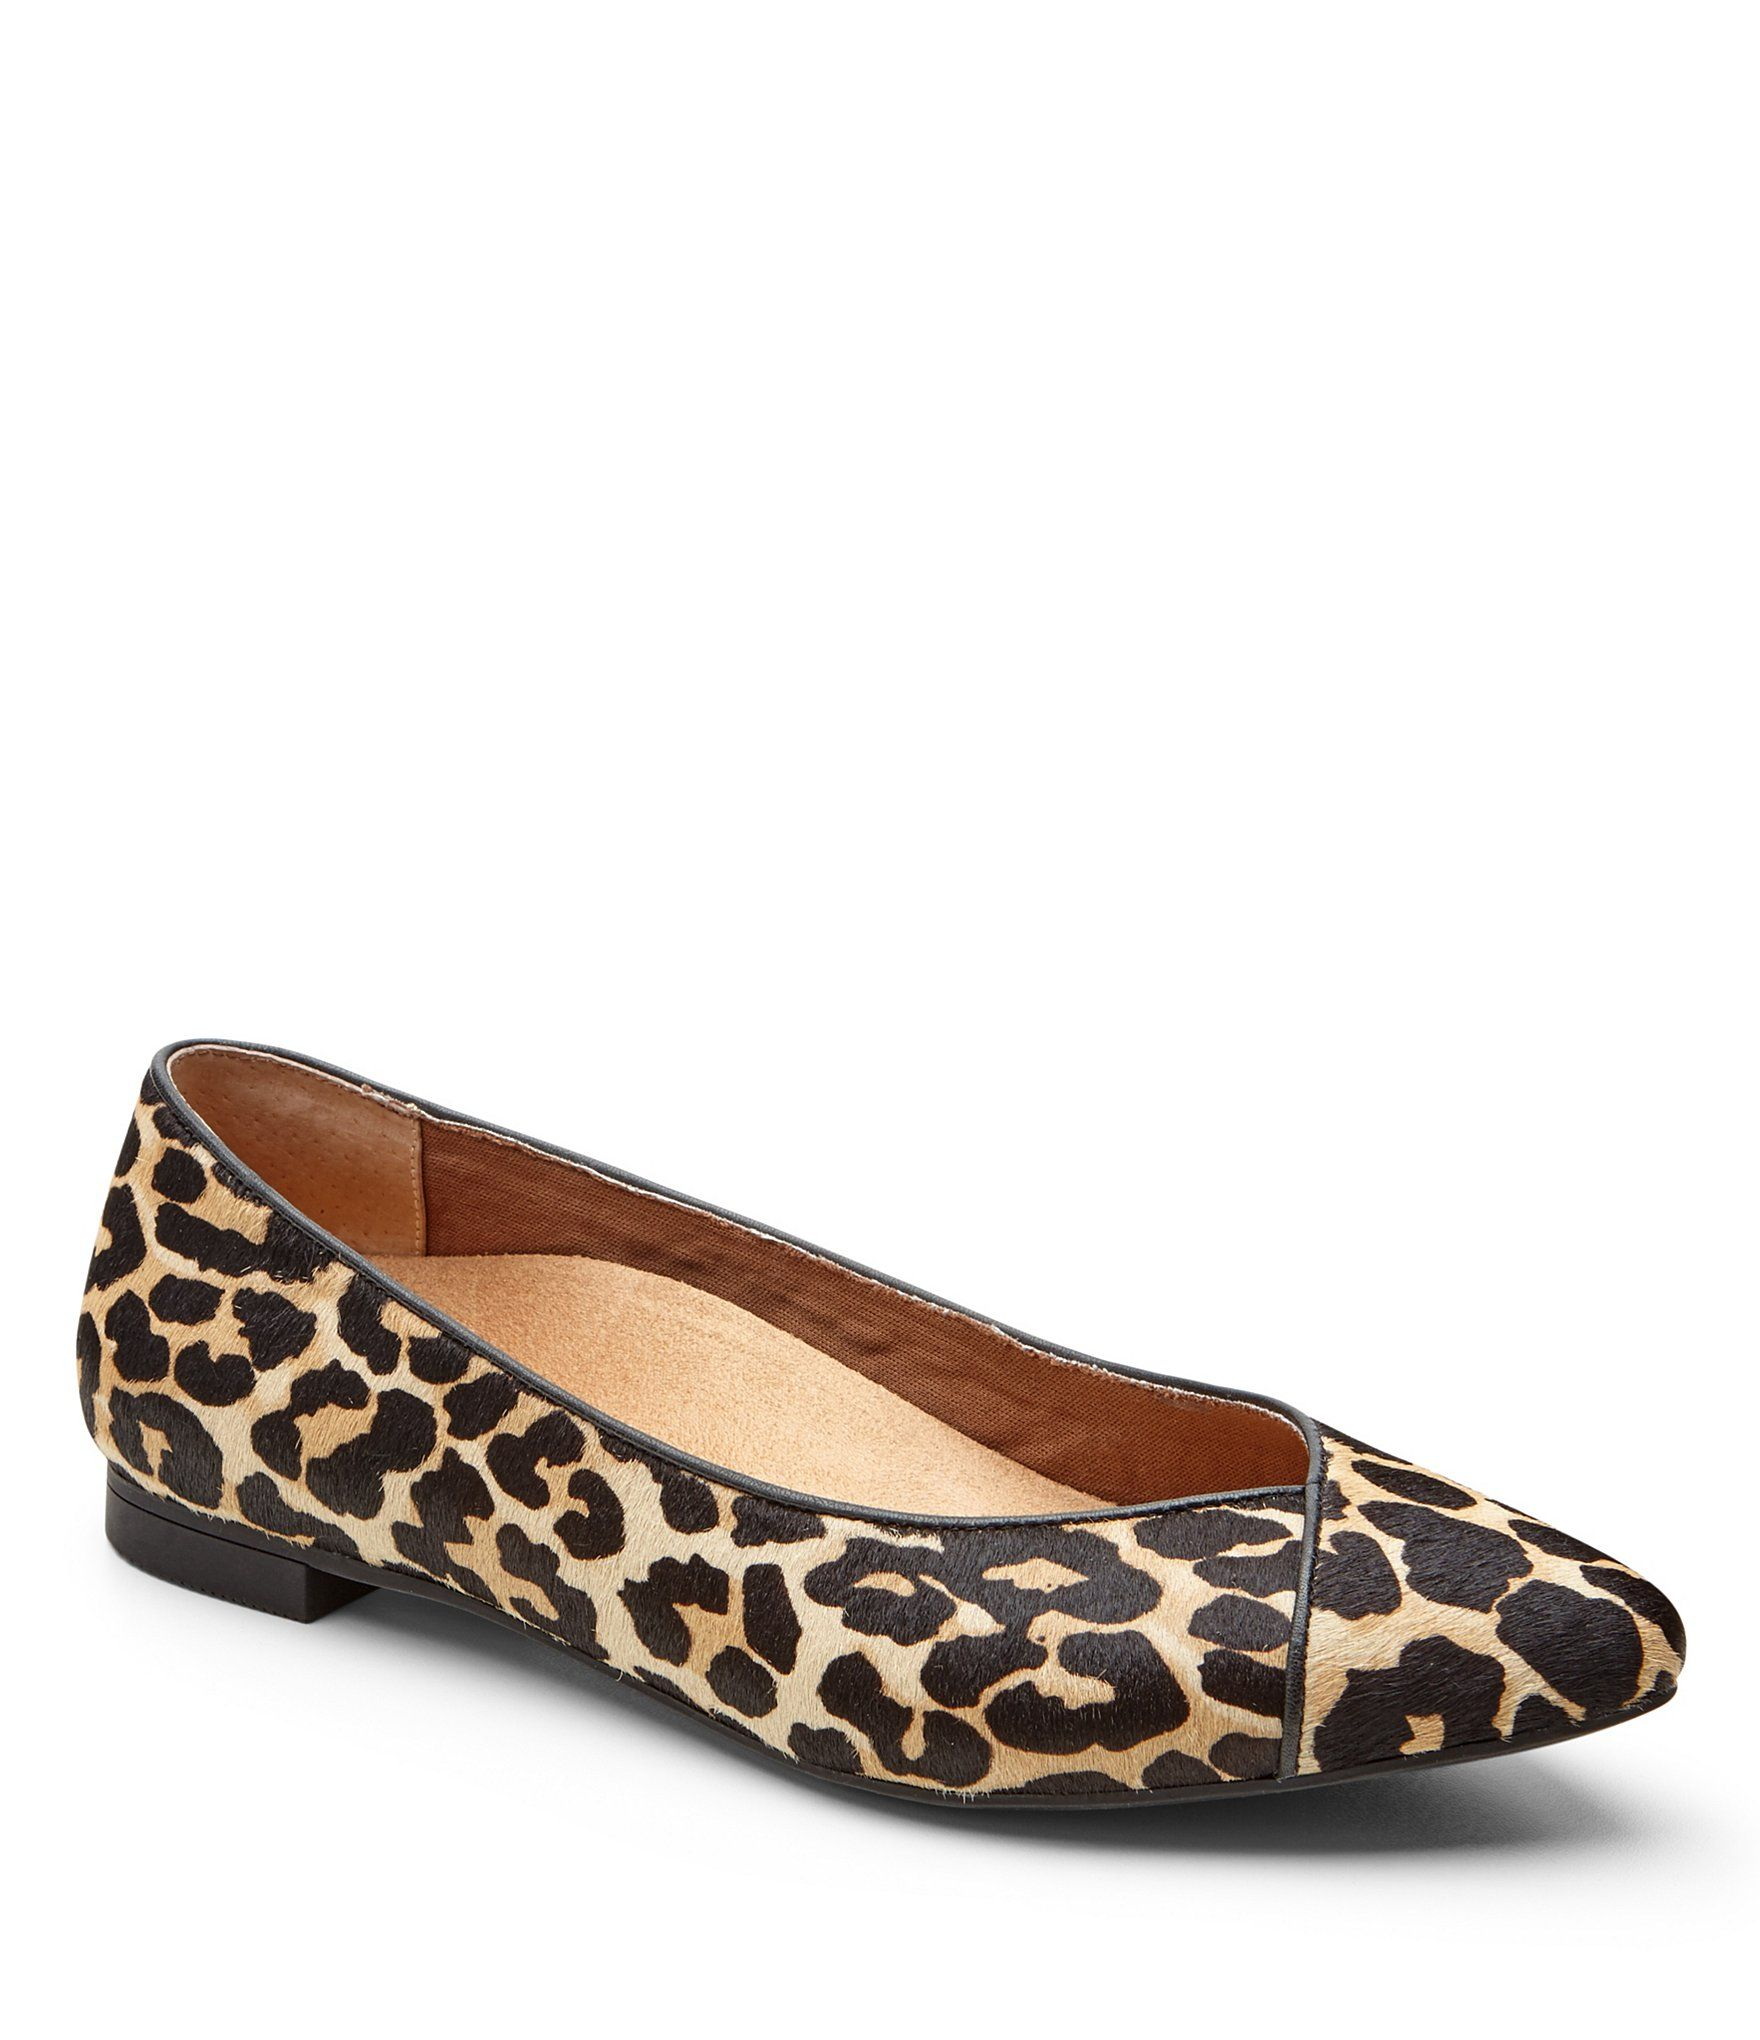 133f4ac28567 Shop for Vionic® Caballo Leopard-Print Genuine Calf Hair Pointed Toe Flats  at Dillards.com. Visit Dillards.com to find clothing